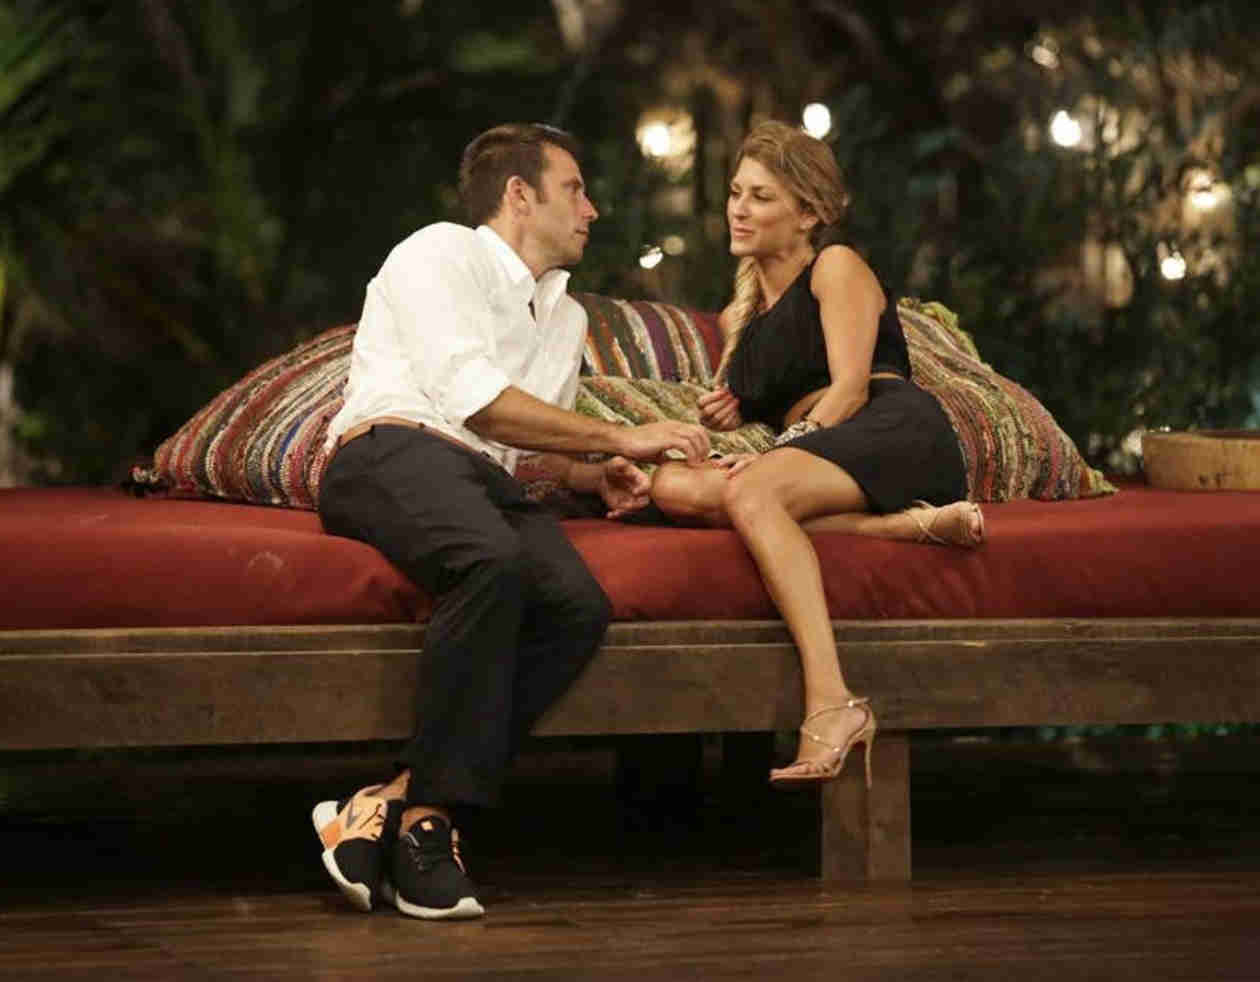 Bachelor in Paradise's Graham Bunn: Why He Gave AshLee Frazier a Second Chance